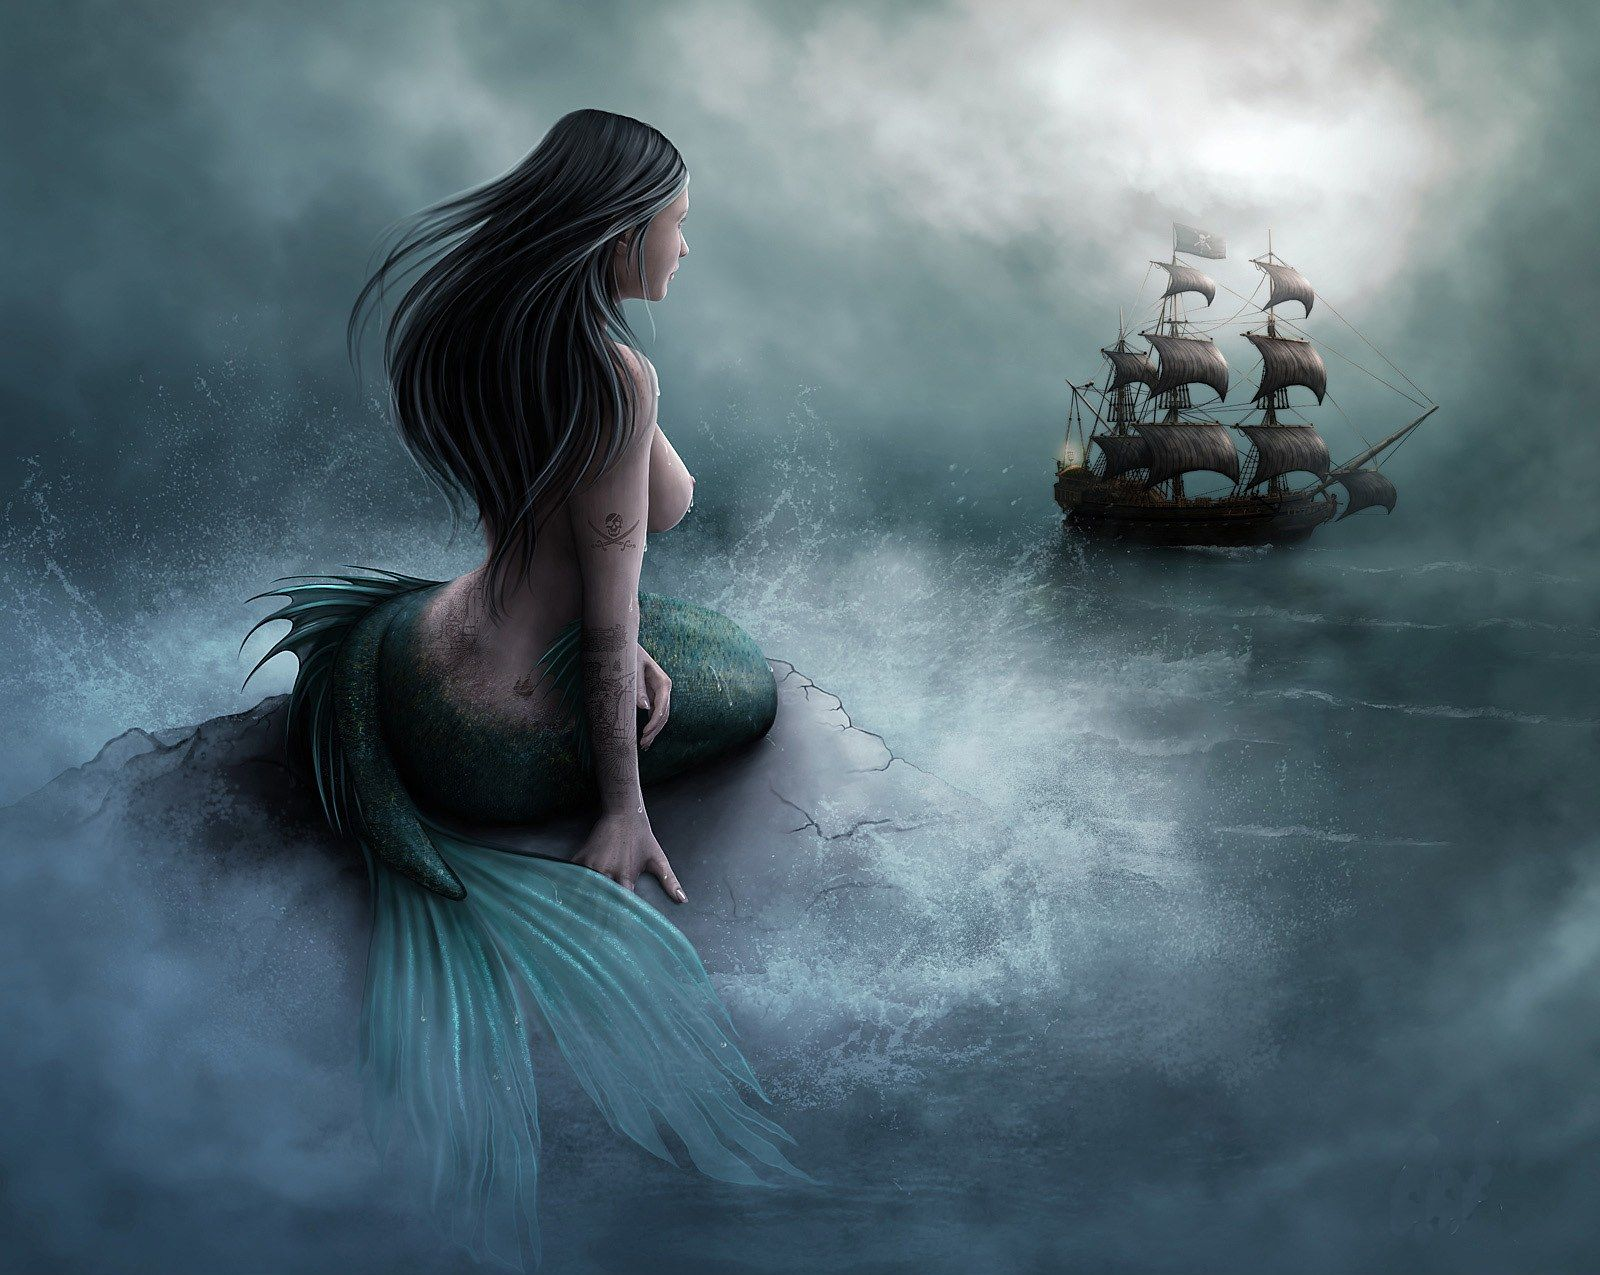 Unknown Mermaid and pirate ship